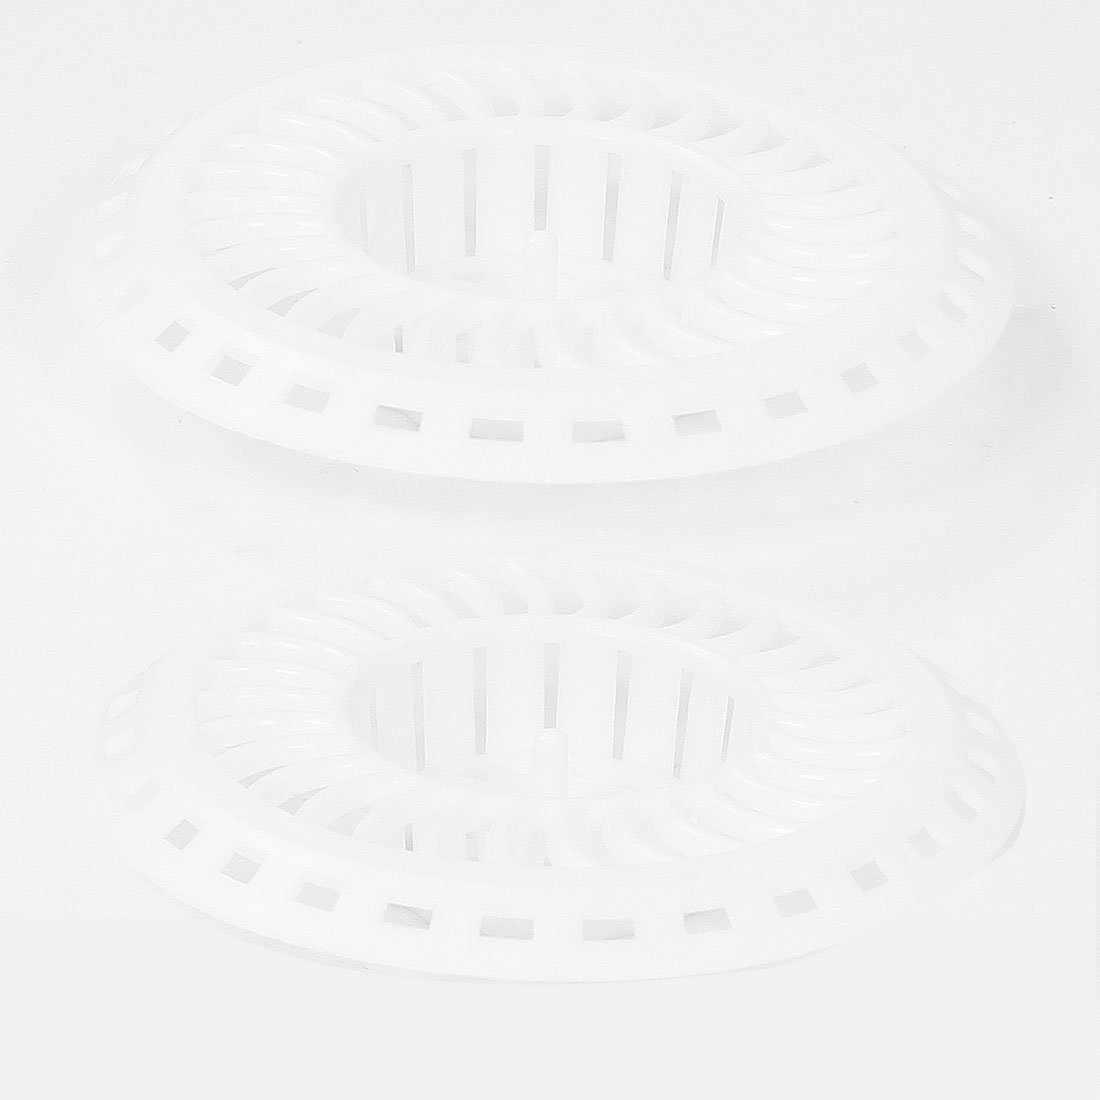 Kitchen 8cm Diameter White Plastic Sink Strainer Drain Stopper 2pcs<br><br>Aliexpress